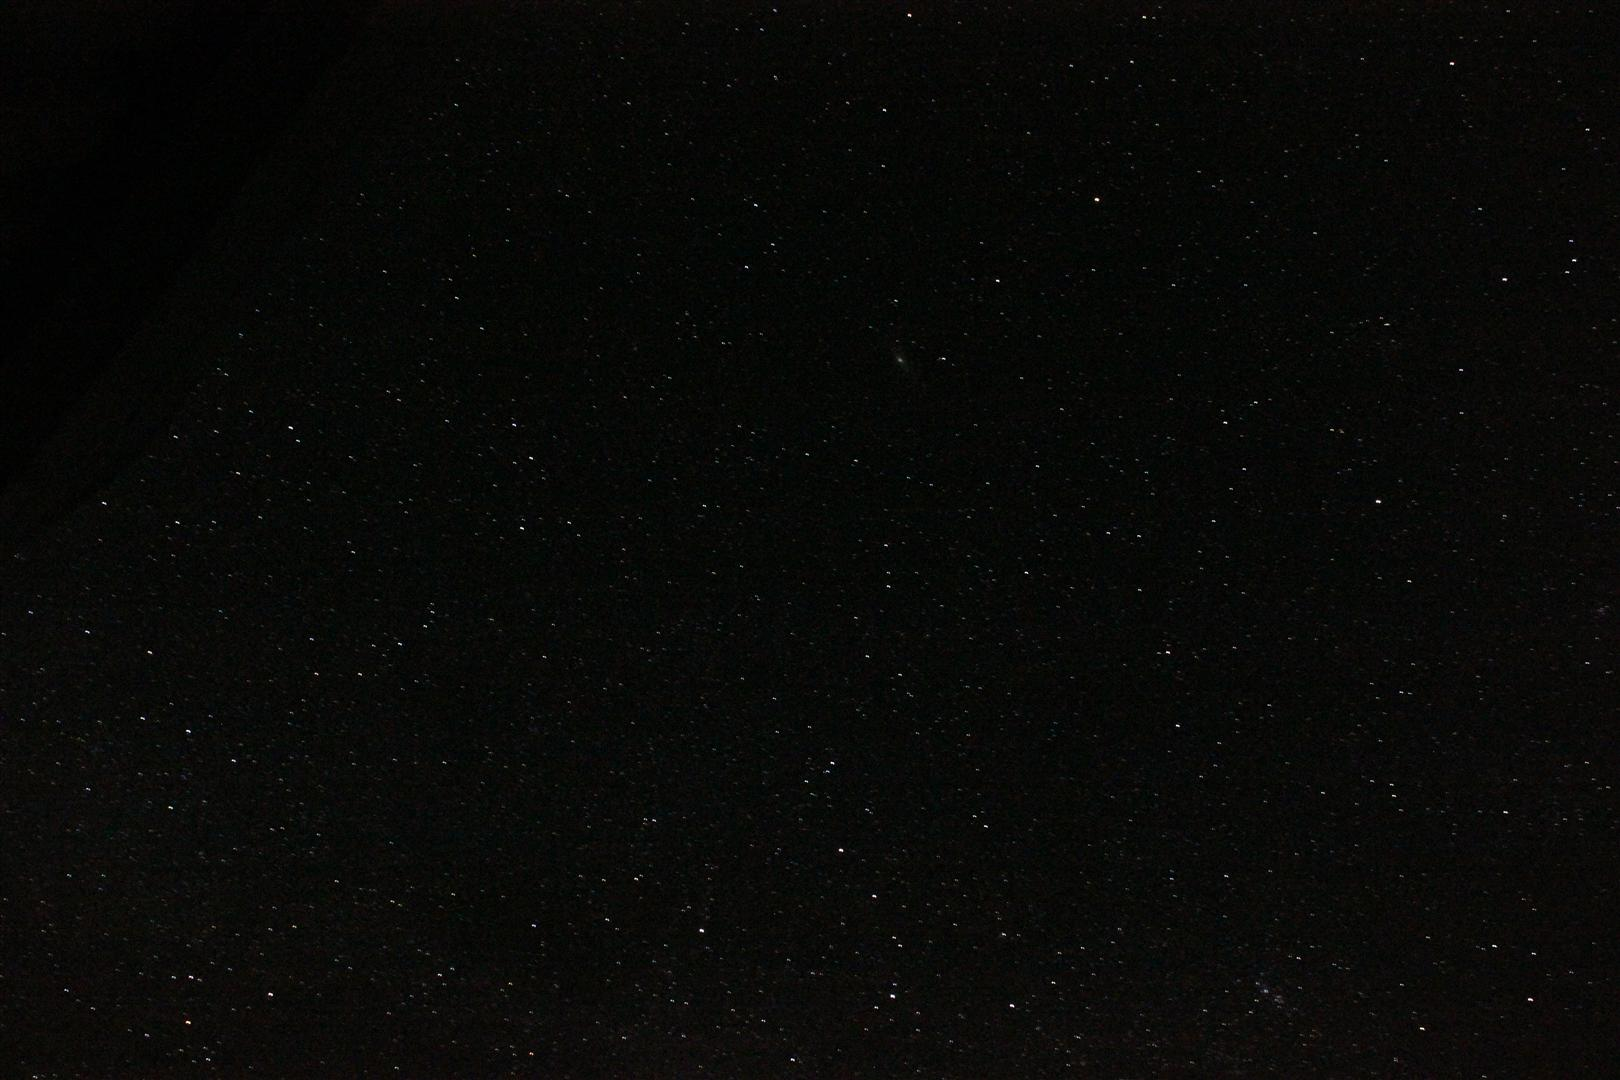 Do you see the Andromeda Galaxy?